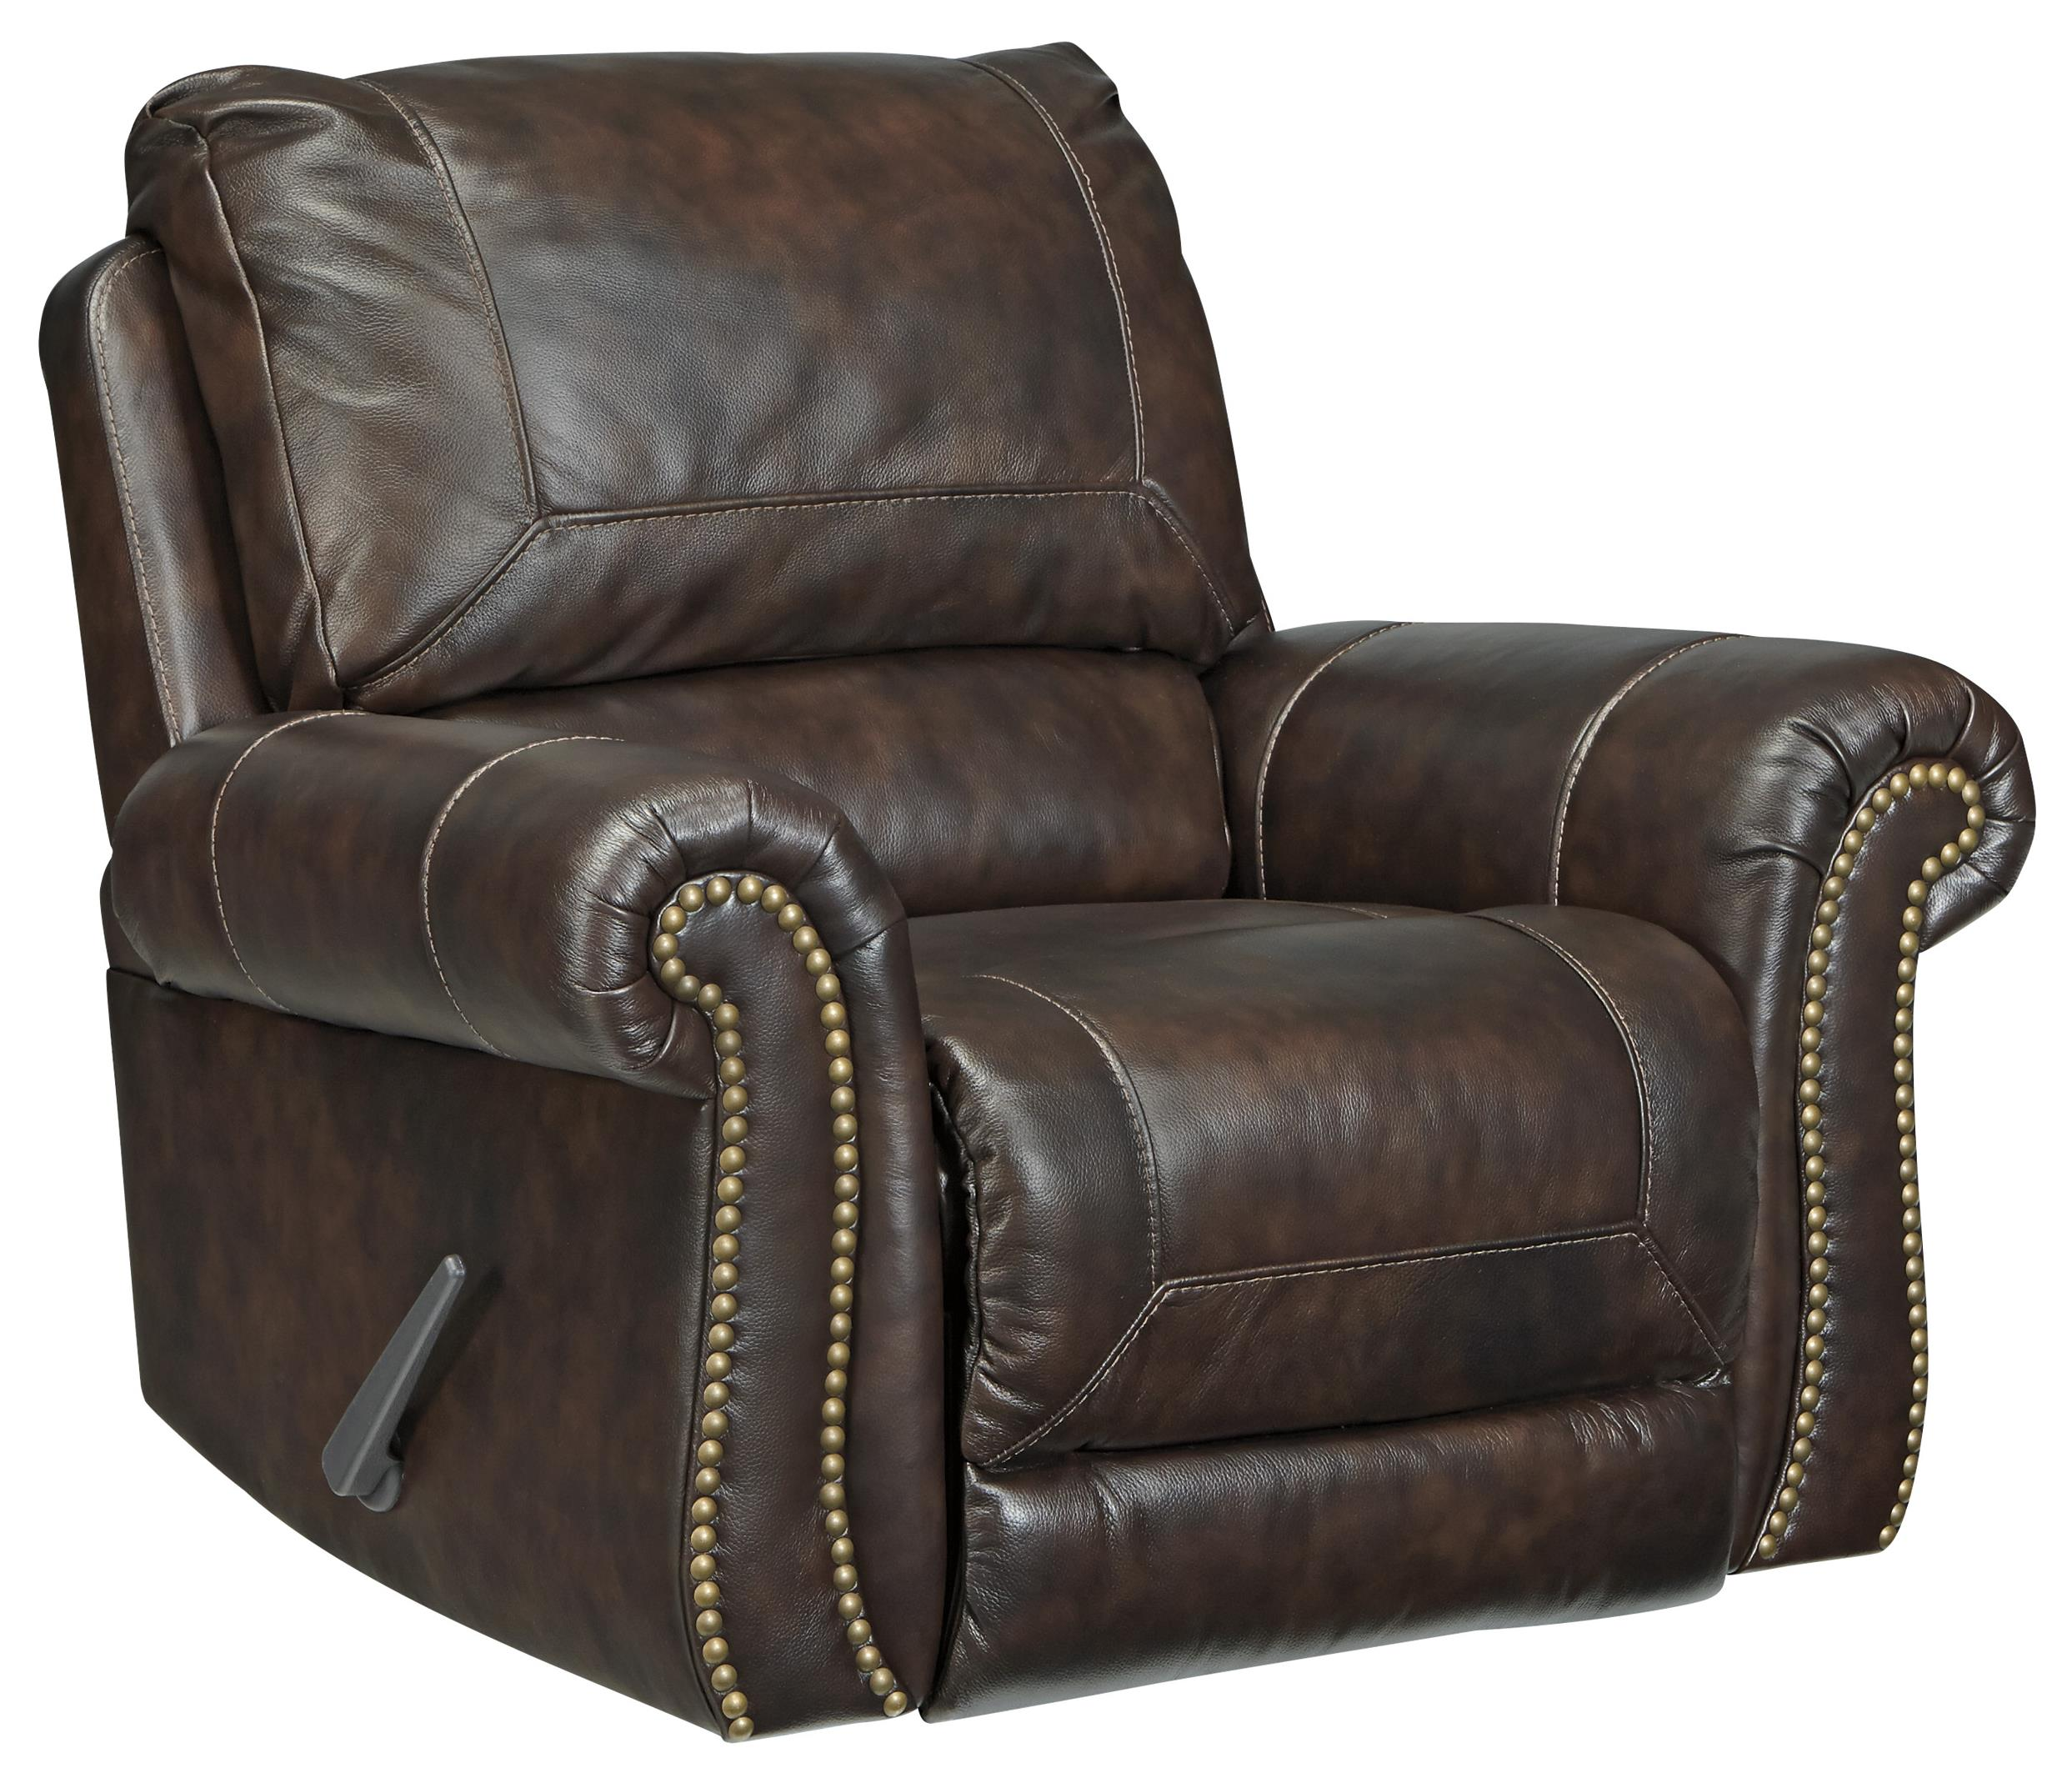 Signature Design by Ashley Bristan Rocker Recliner - Item Number: 8220225